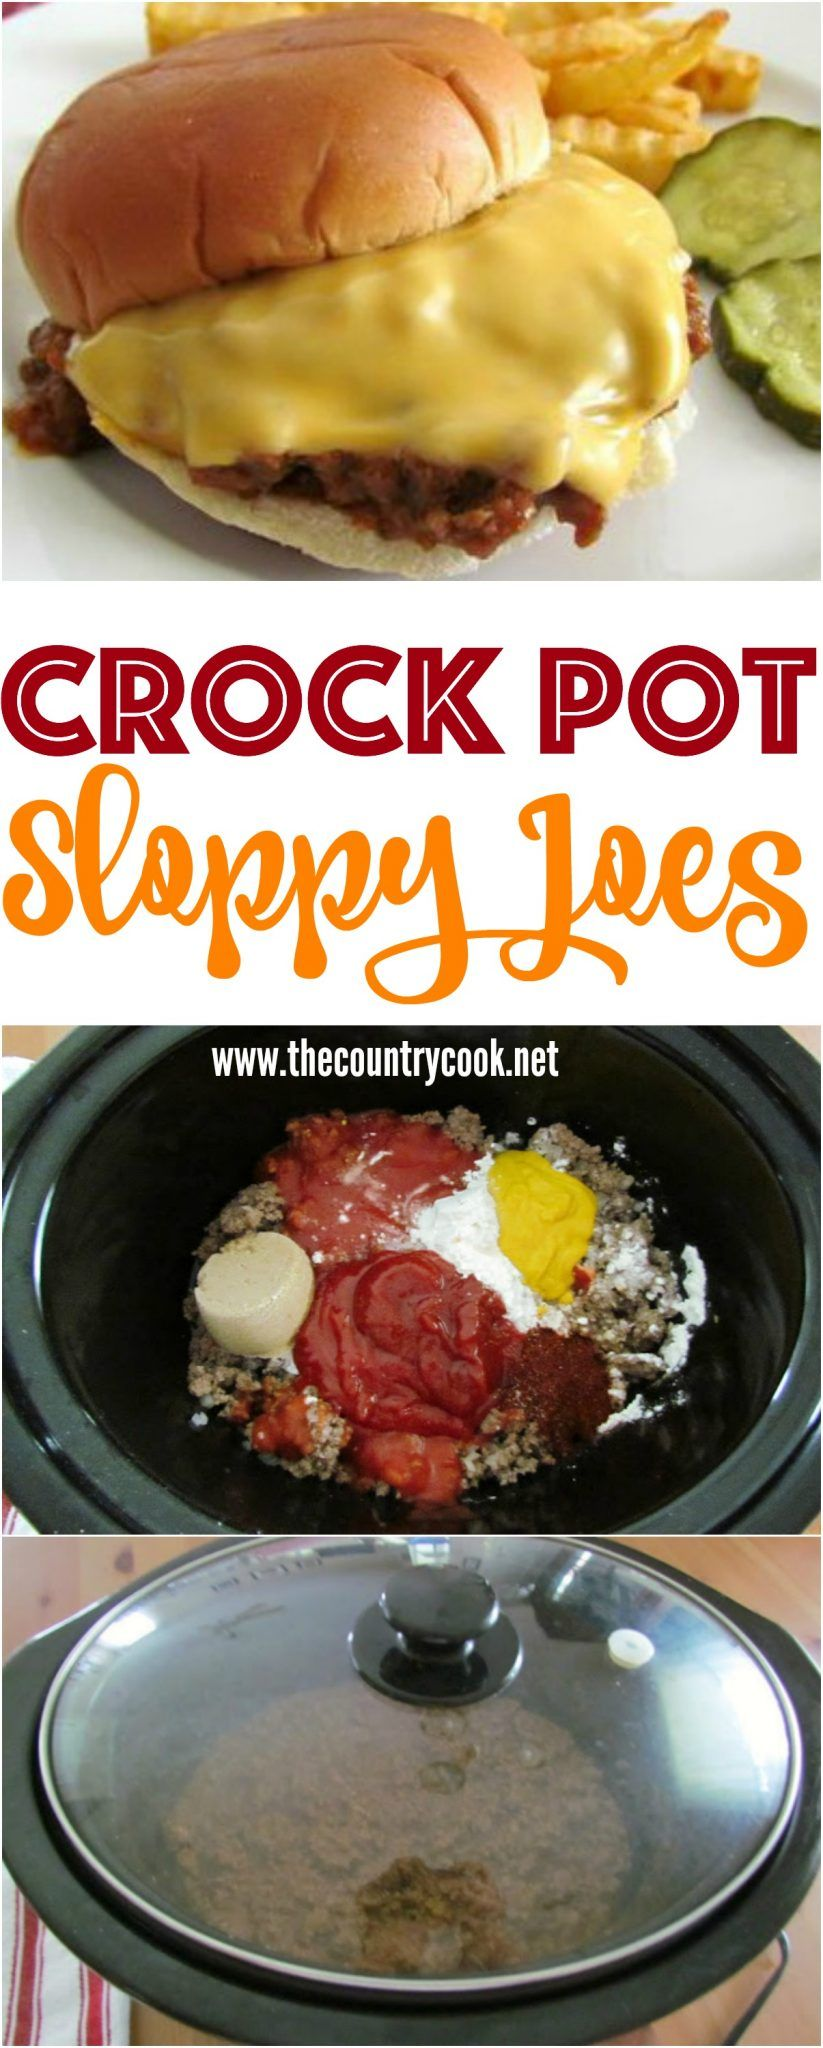 Easy crockpot meals with hamburger meat